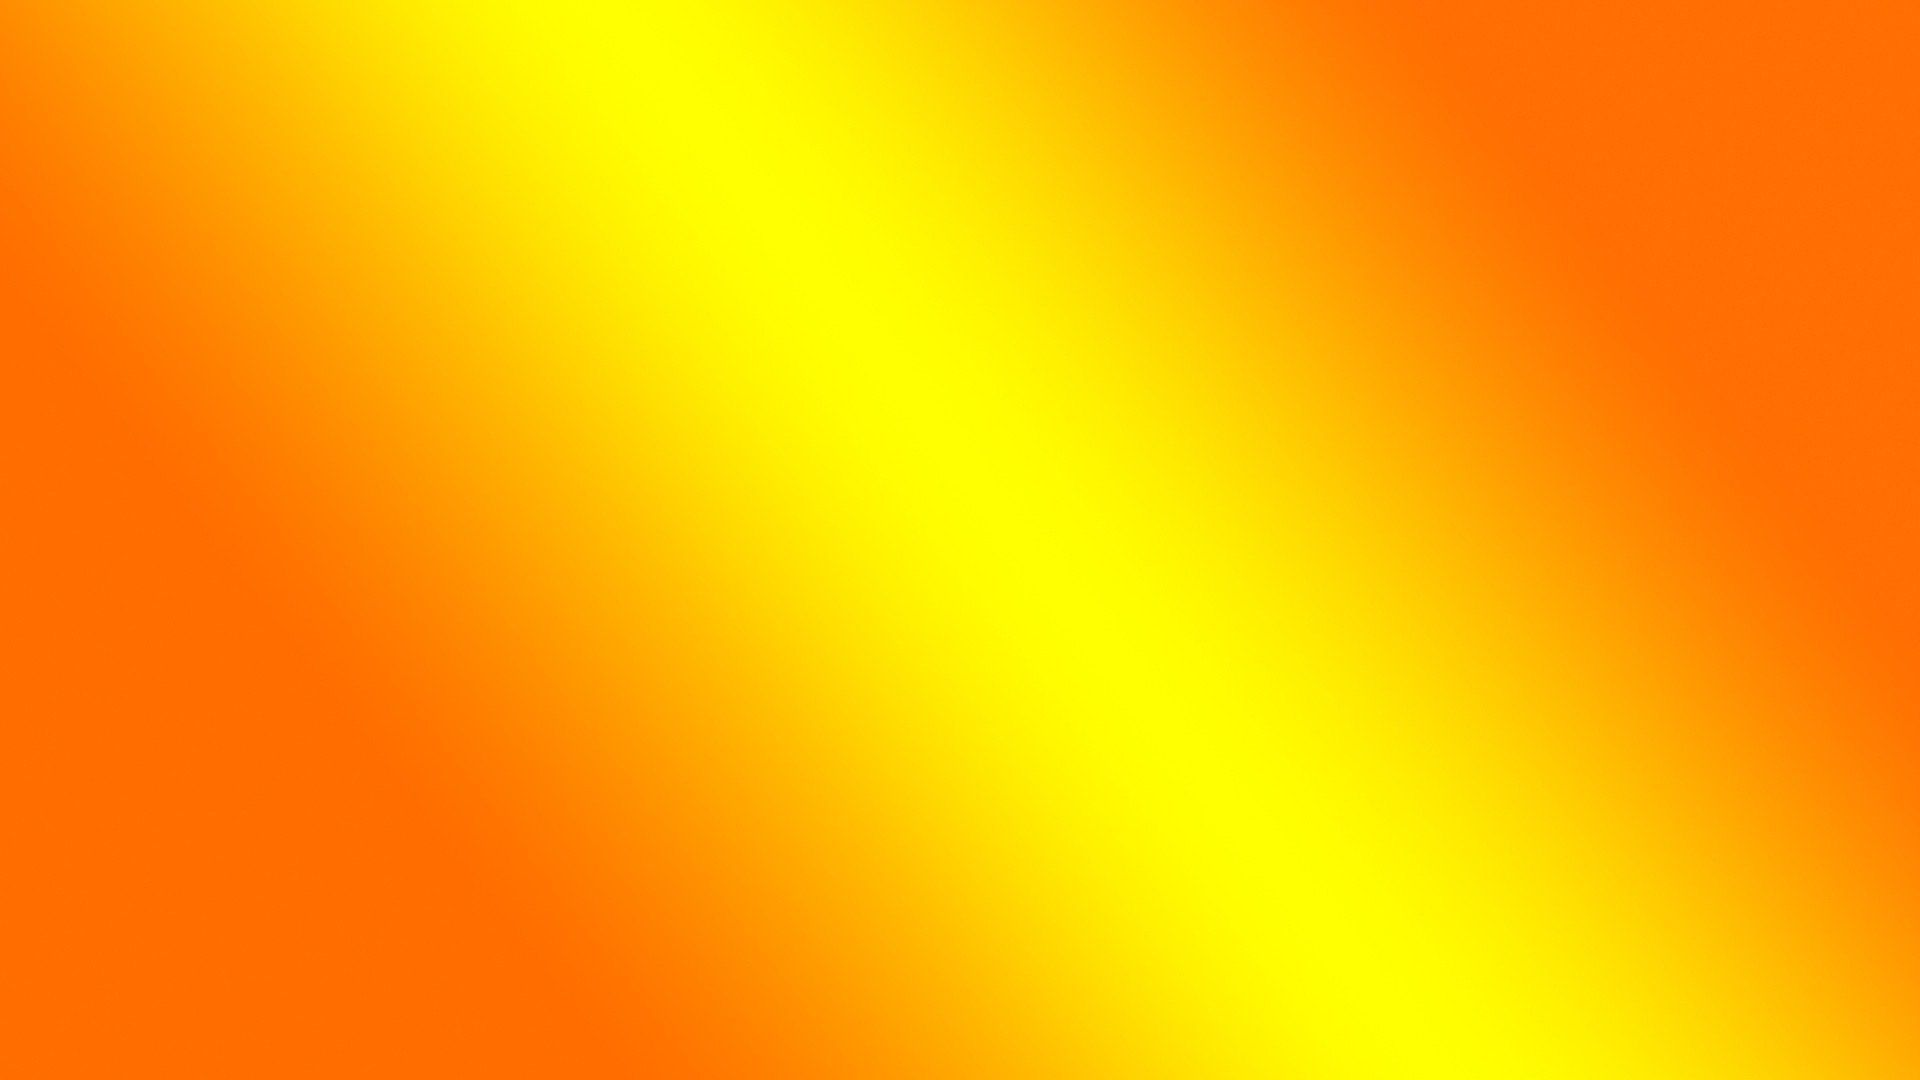 19x1080 Simple Background Hr Wallpaper Free Background Images Yellow Background Orange Background